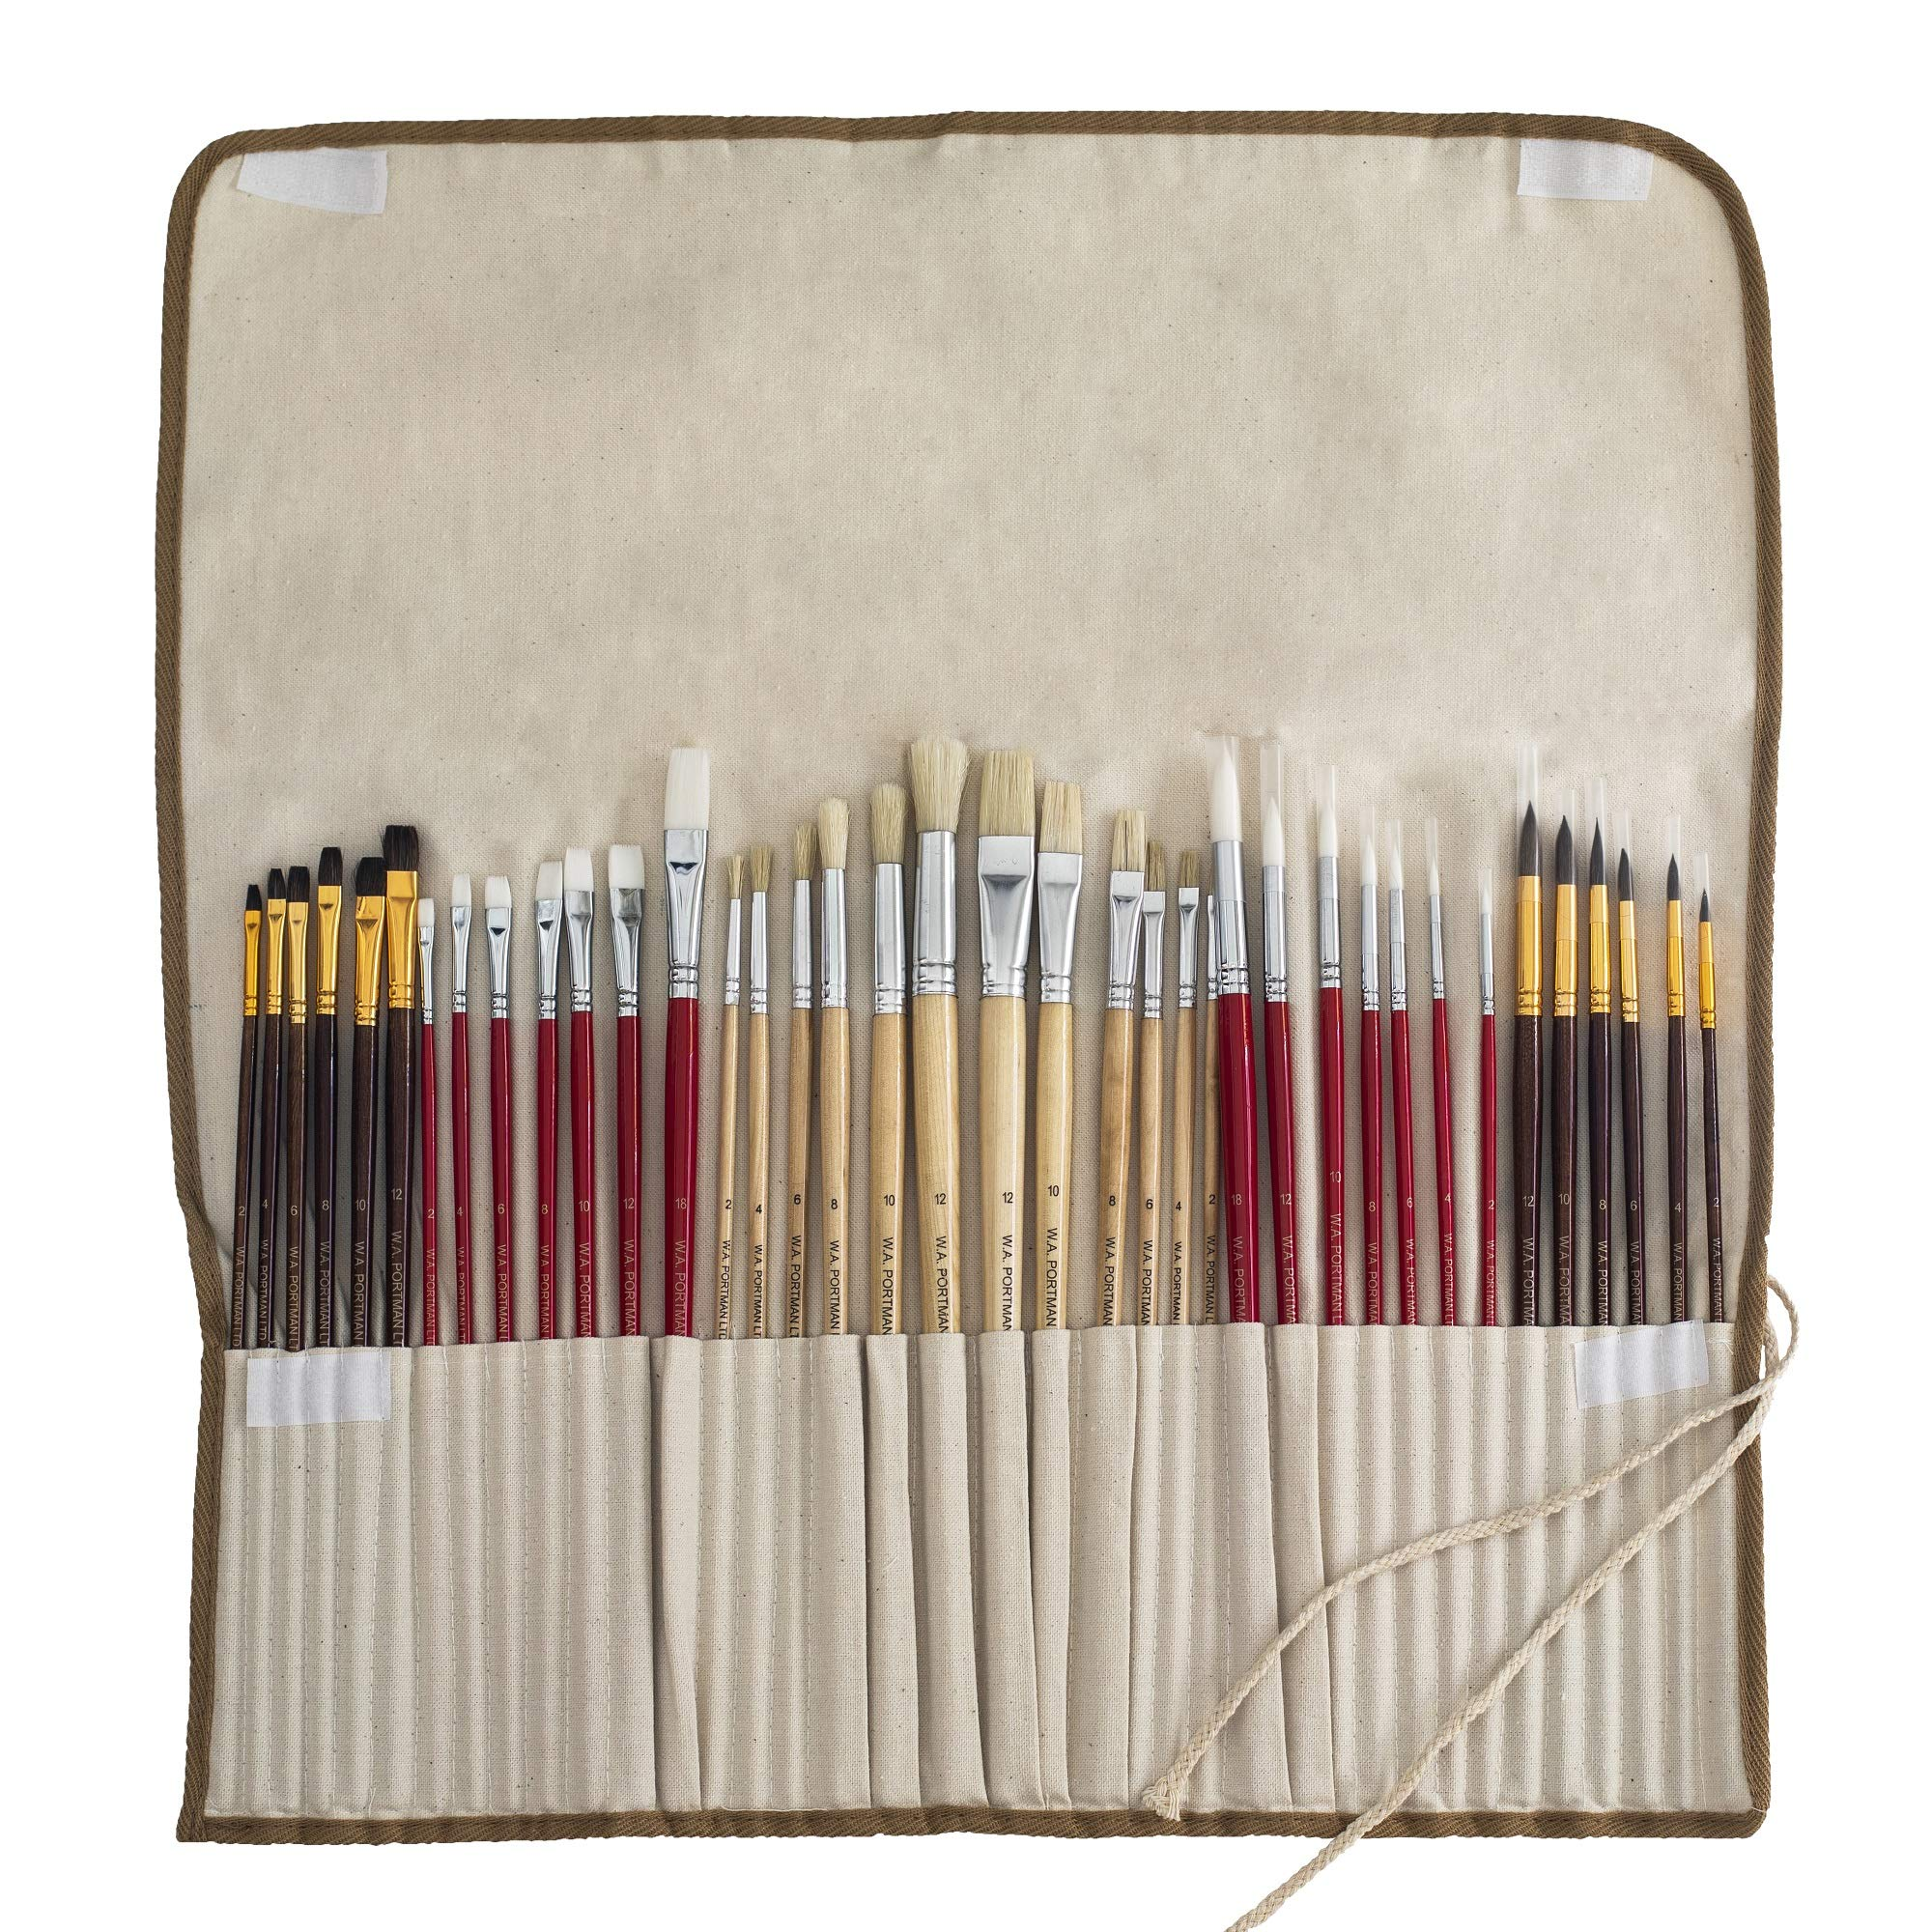 WA Portman Artist Paint Brush Set for Acrylic Watercolor Oil Gouache Model Face and Body Painting | 38-pc Quality Synthetic Hair Painting Brushes Set | Handy Canvas Holder Great for Kids and Adults by W.A. Portman